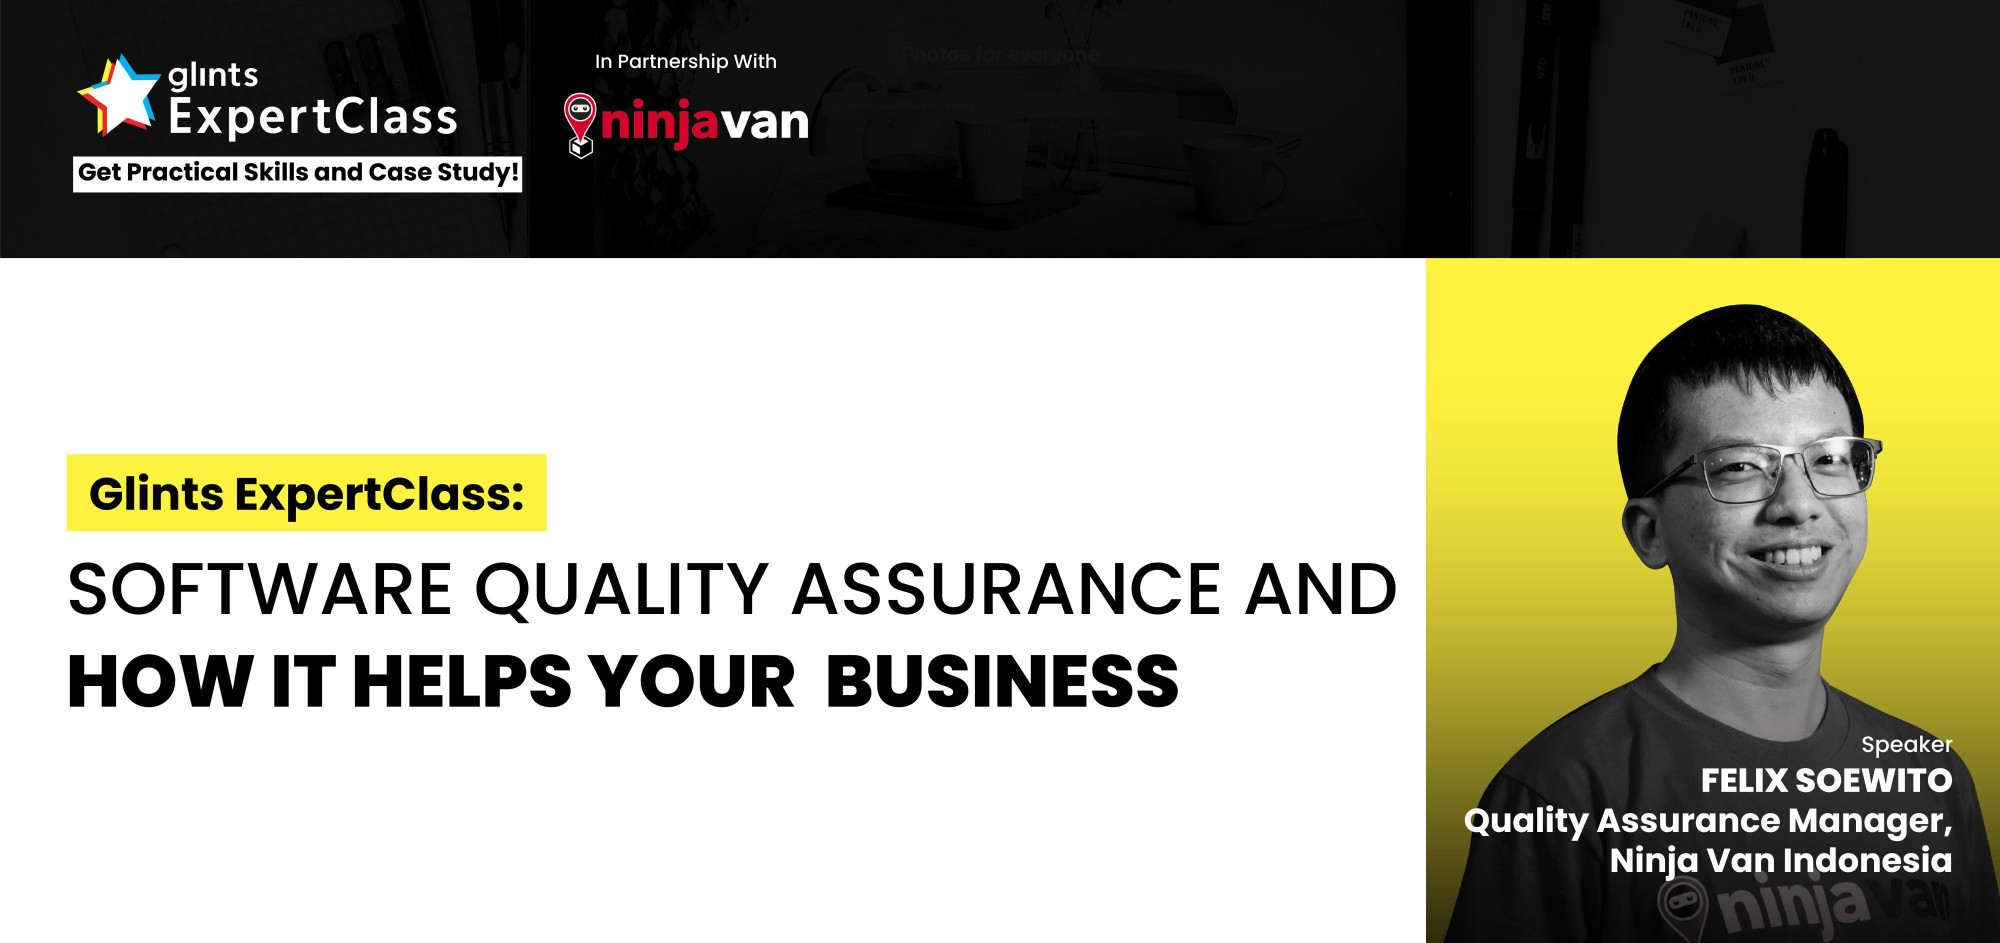 [Online Glints ExpertClass] Software Quality Assurance and How It Helps Your Business